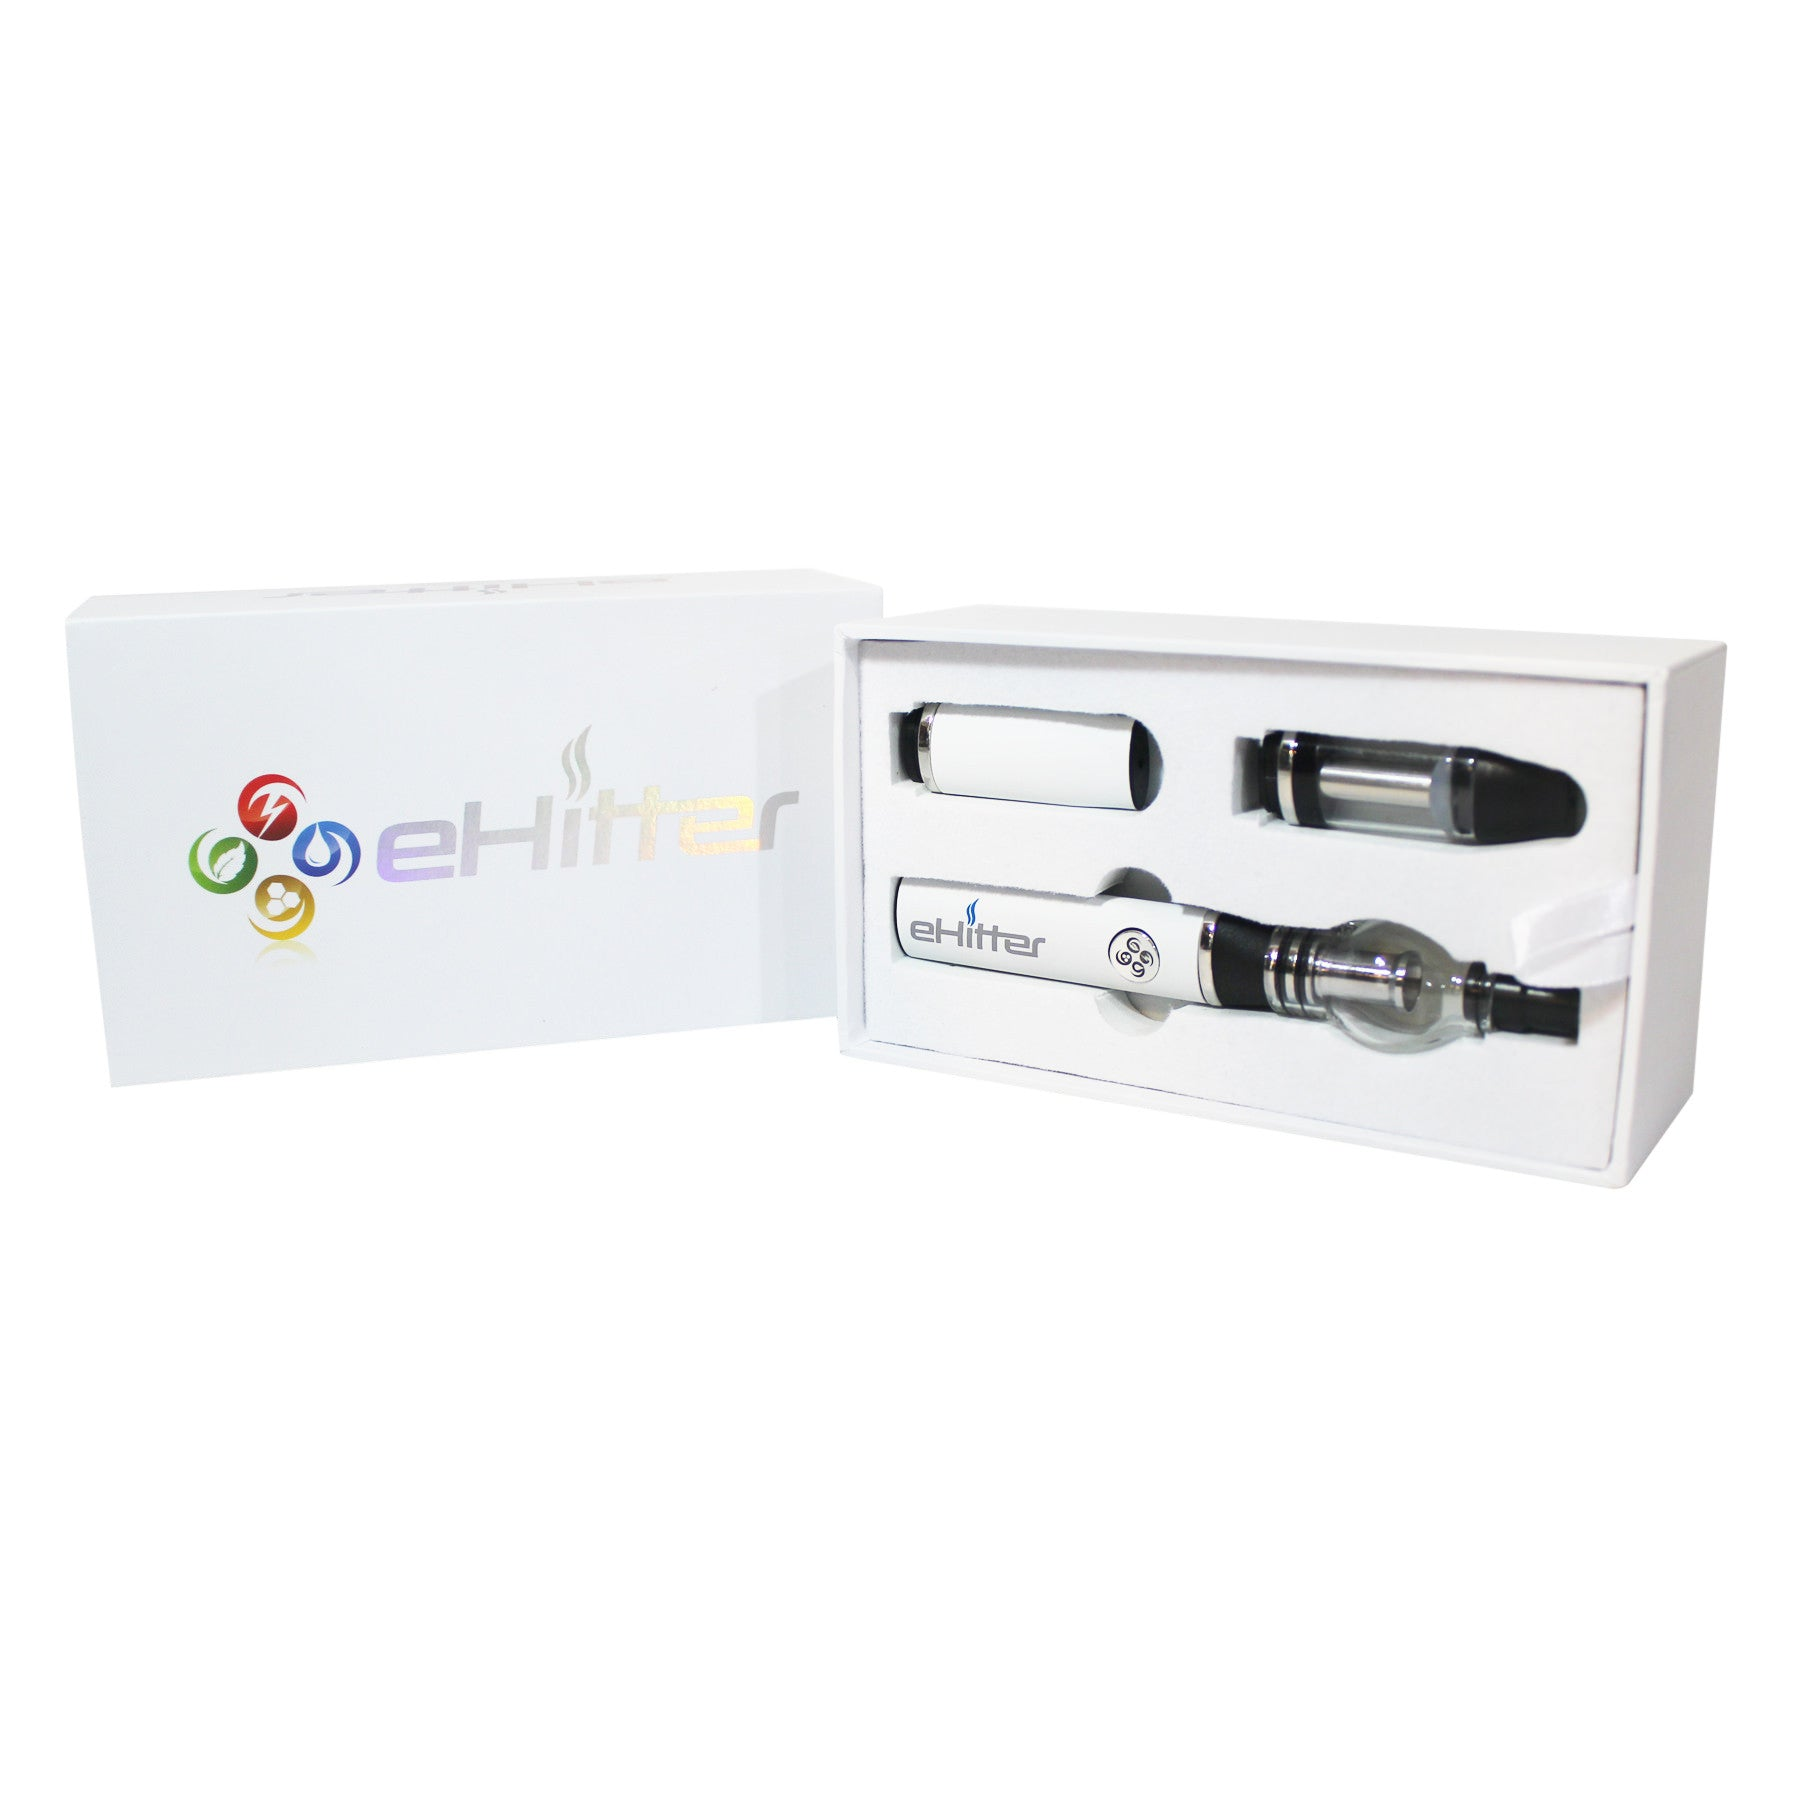 eHitter Vaporizer Kit Multi Use Vape Kit